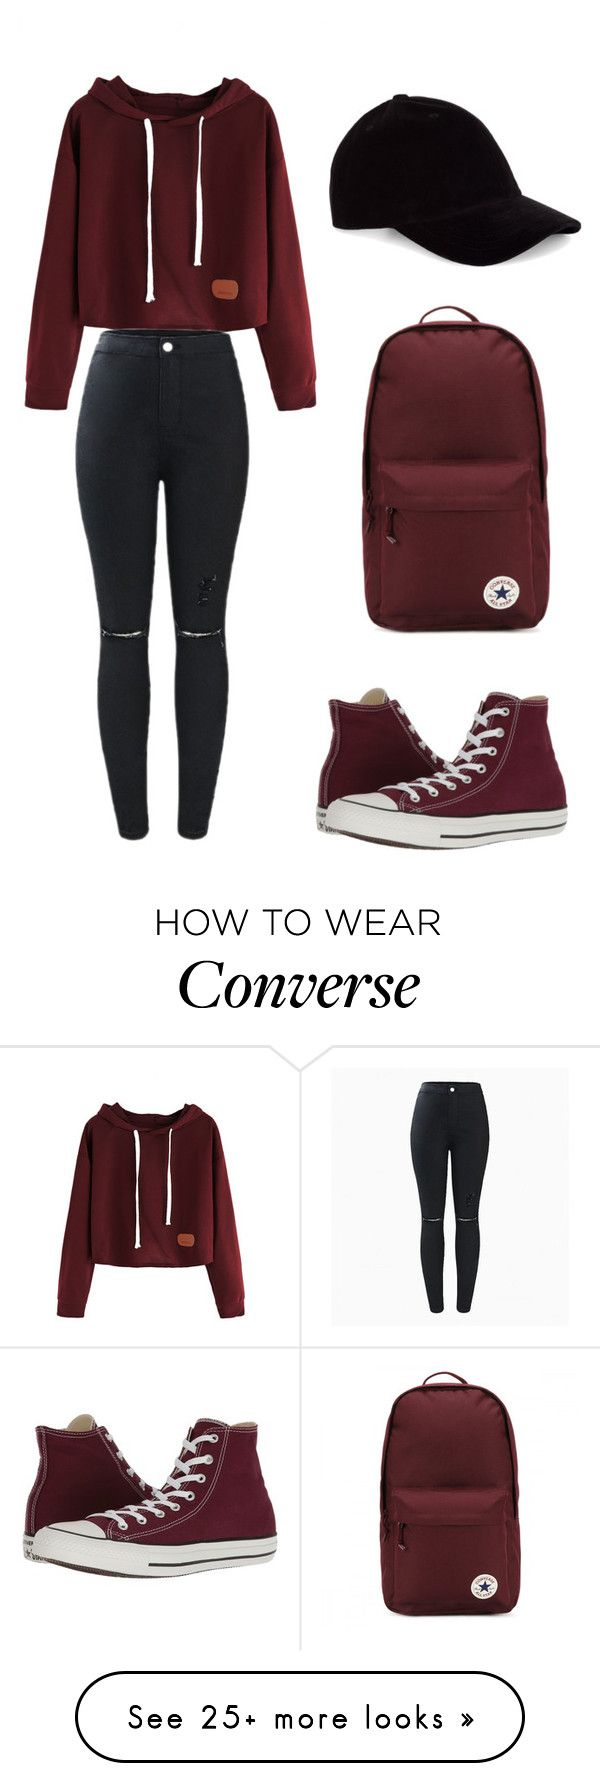 Blacknredvelvet by jennifer1105 on Polyvore featuring Converse and Le Amonie